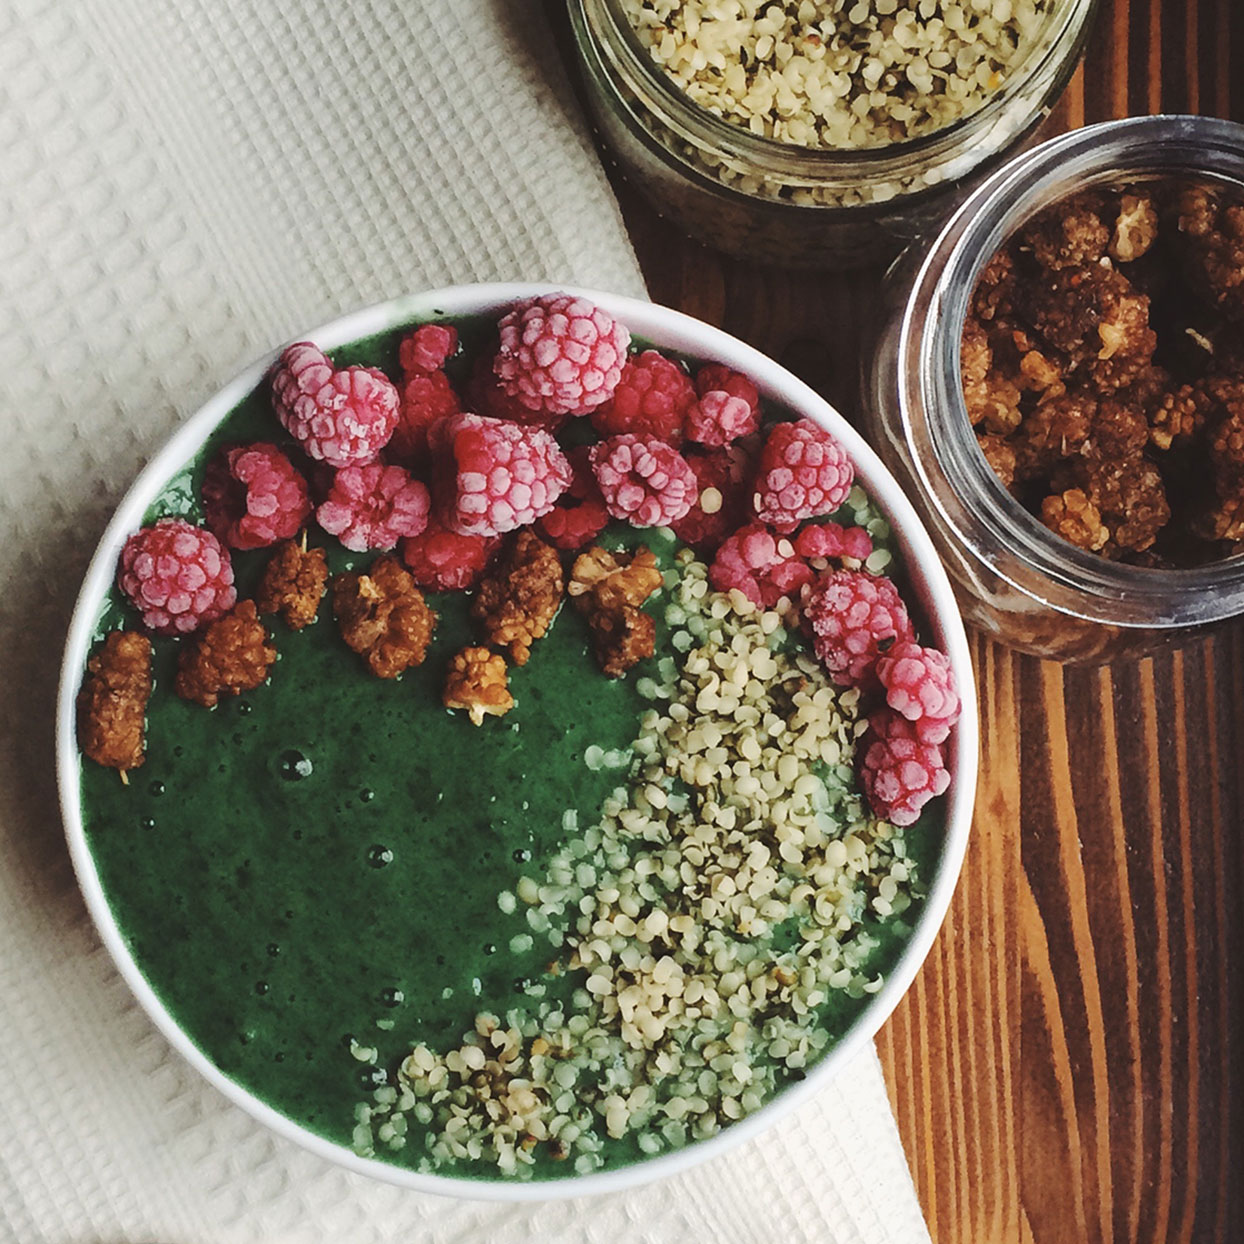 healthy-green-smoothie-bowl-recipe